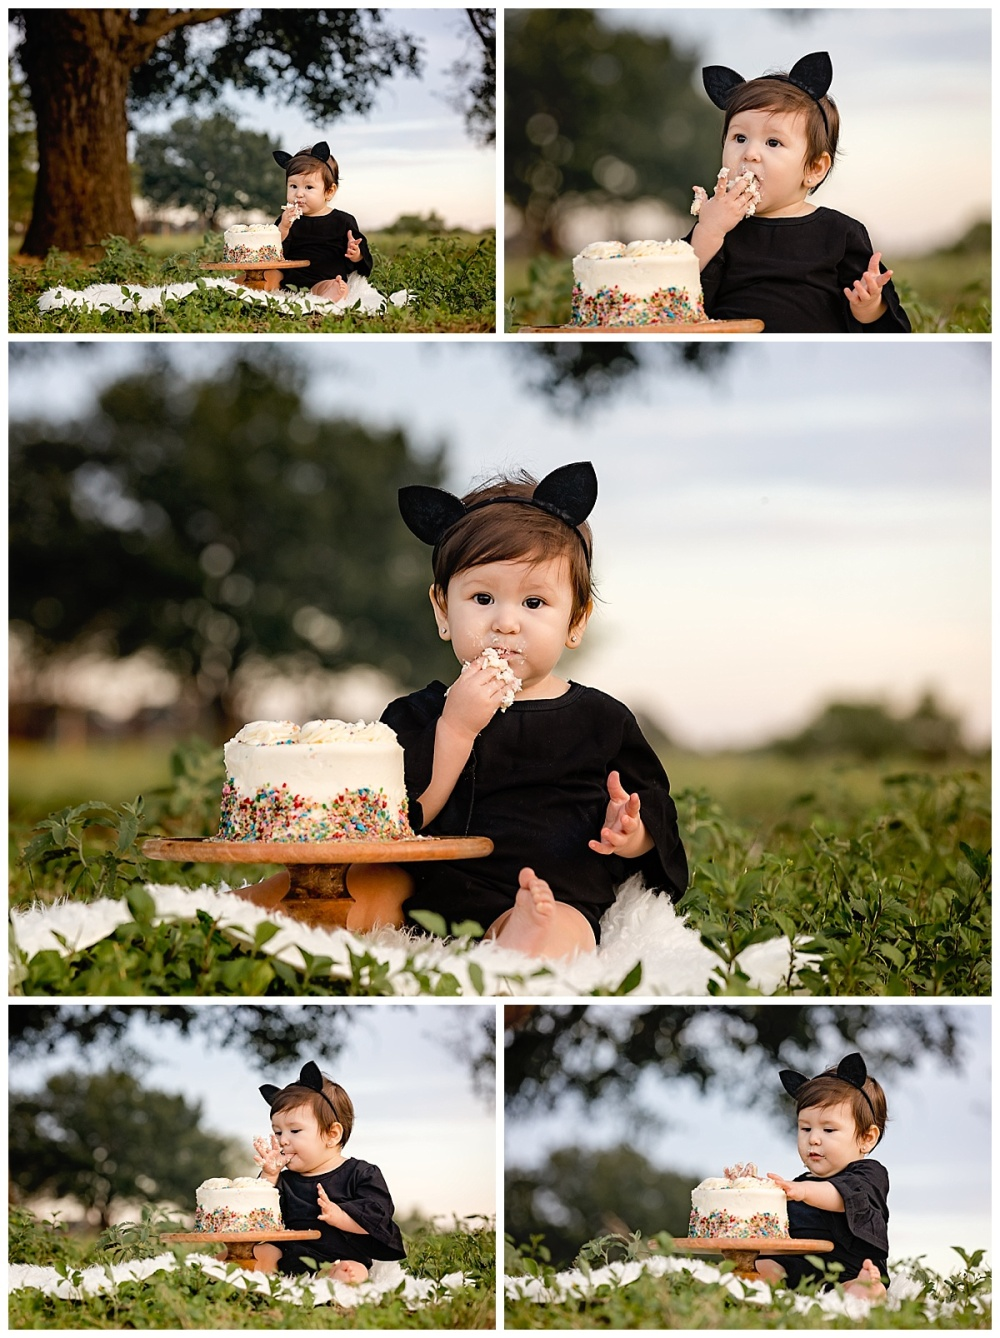 Family-Photographer-LaVernia-Texas-Fall-Carly-Barton-Photography-Zadie-Cake-Smash_0005.jpg